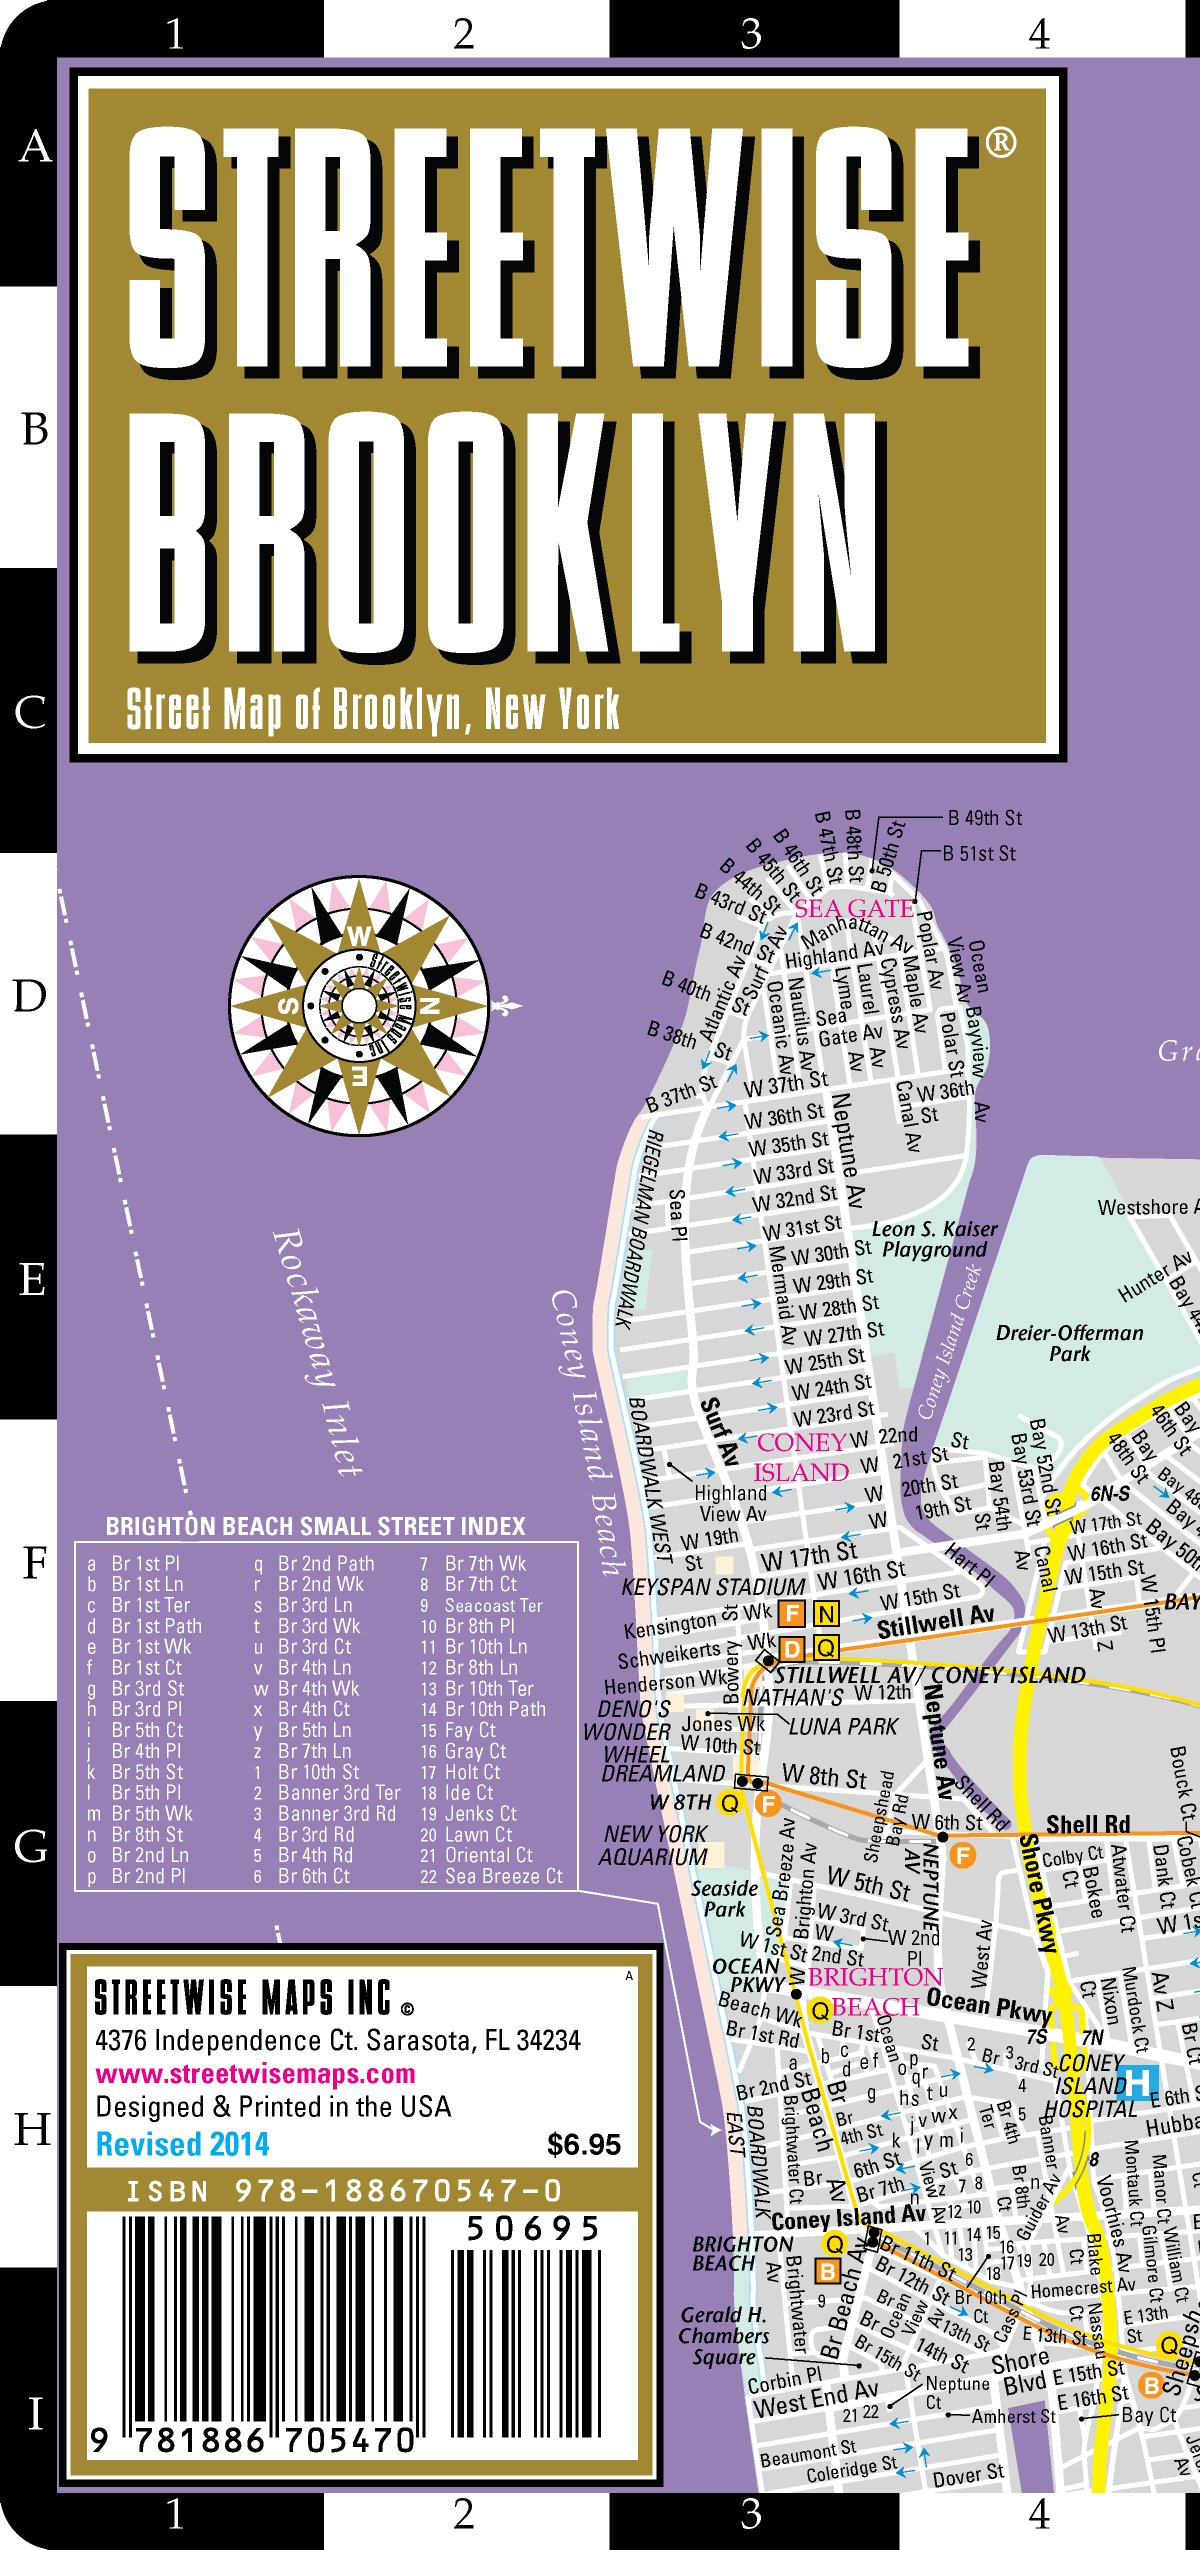 New York City Subway Map With Street Names.Streetwise Brooklyn Map Laminated City Center Street Map Of